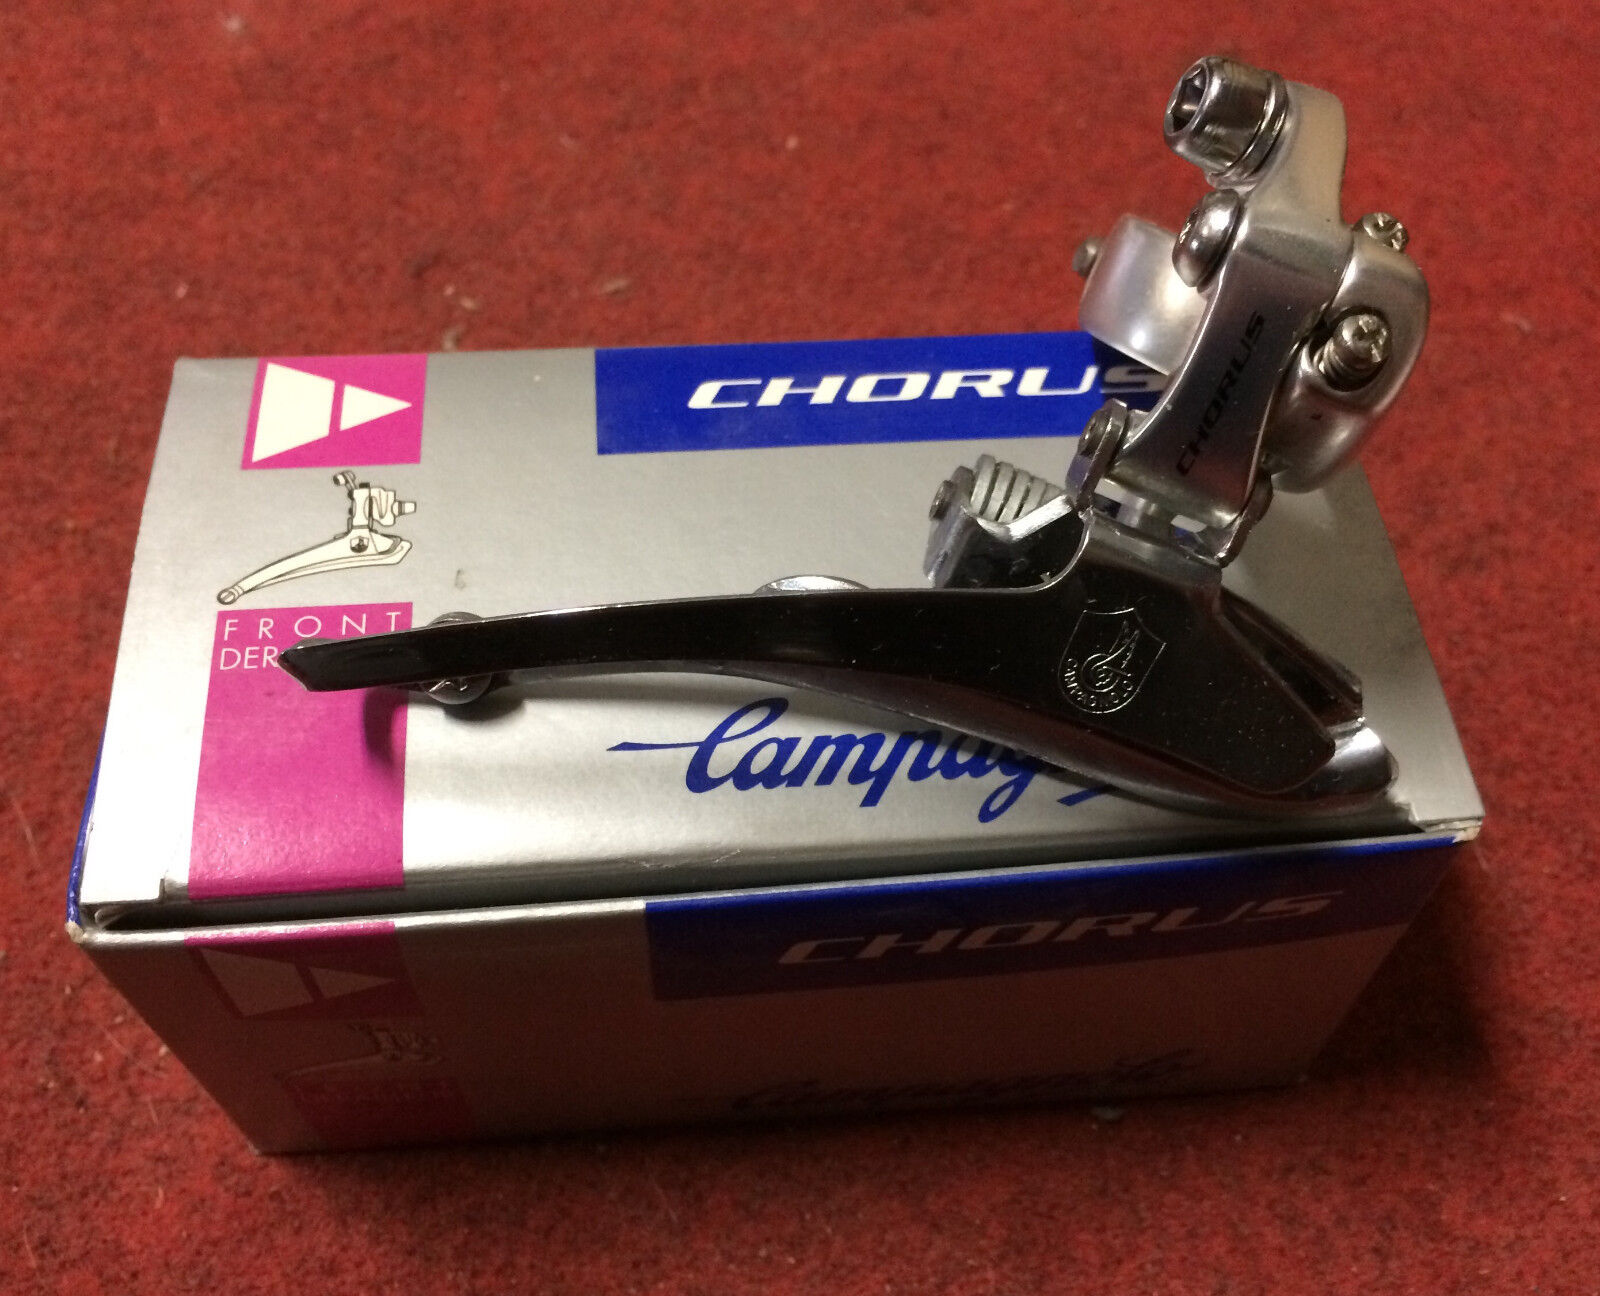 Front derailleur campagnolo chorus 9s  28.6mm clamp on bike front derailleur  wholesale price and reliable quality